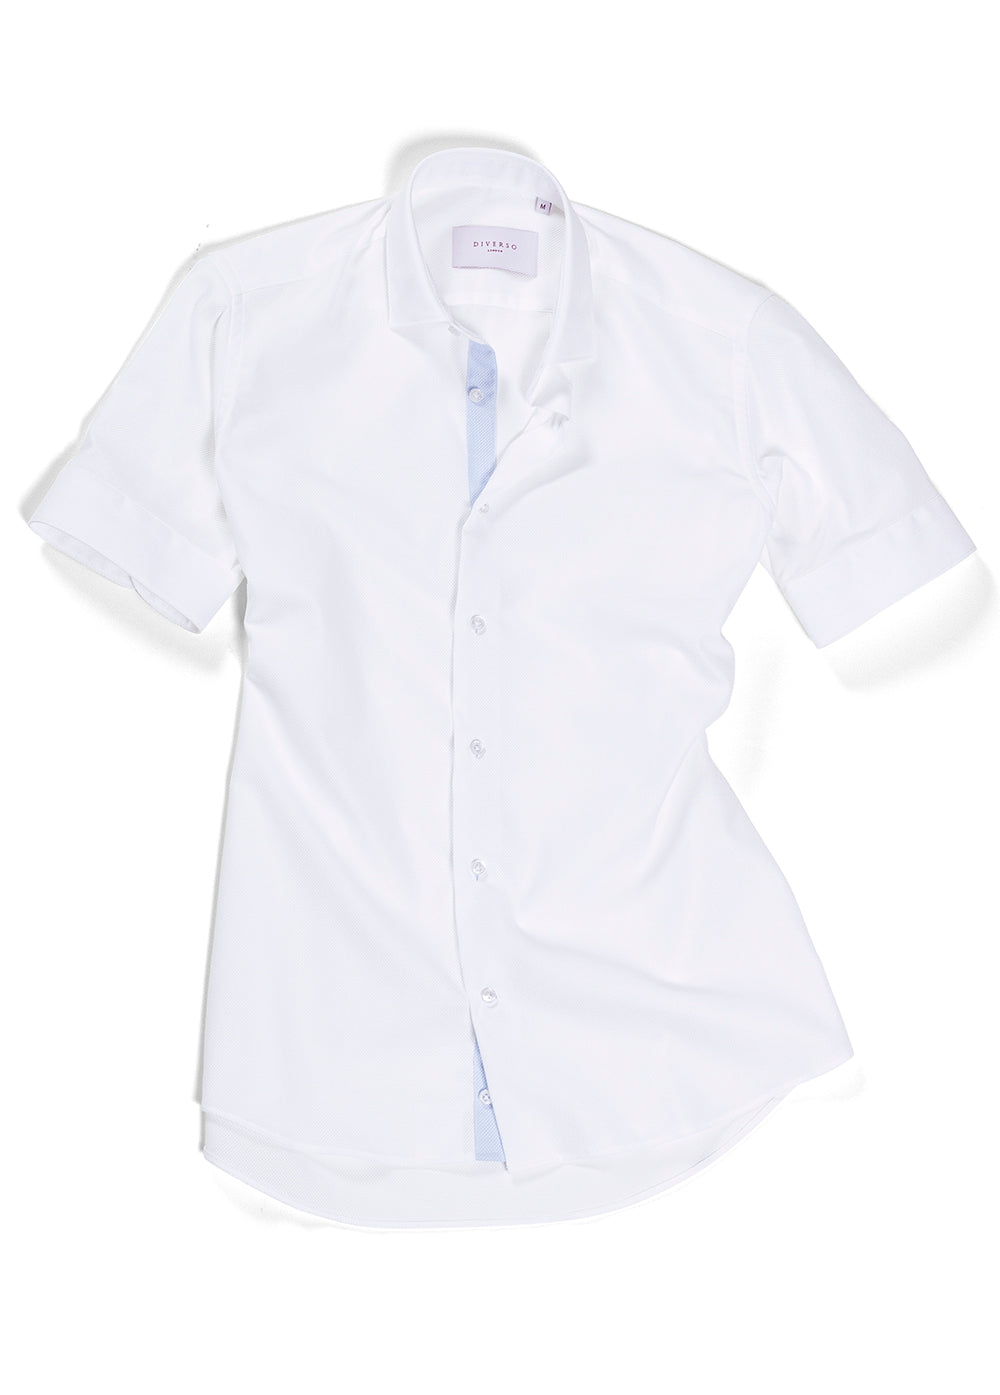 White Trim Giro Inglese Short Sleeve Shirt